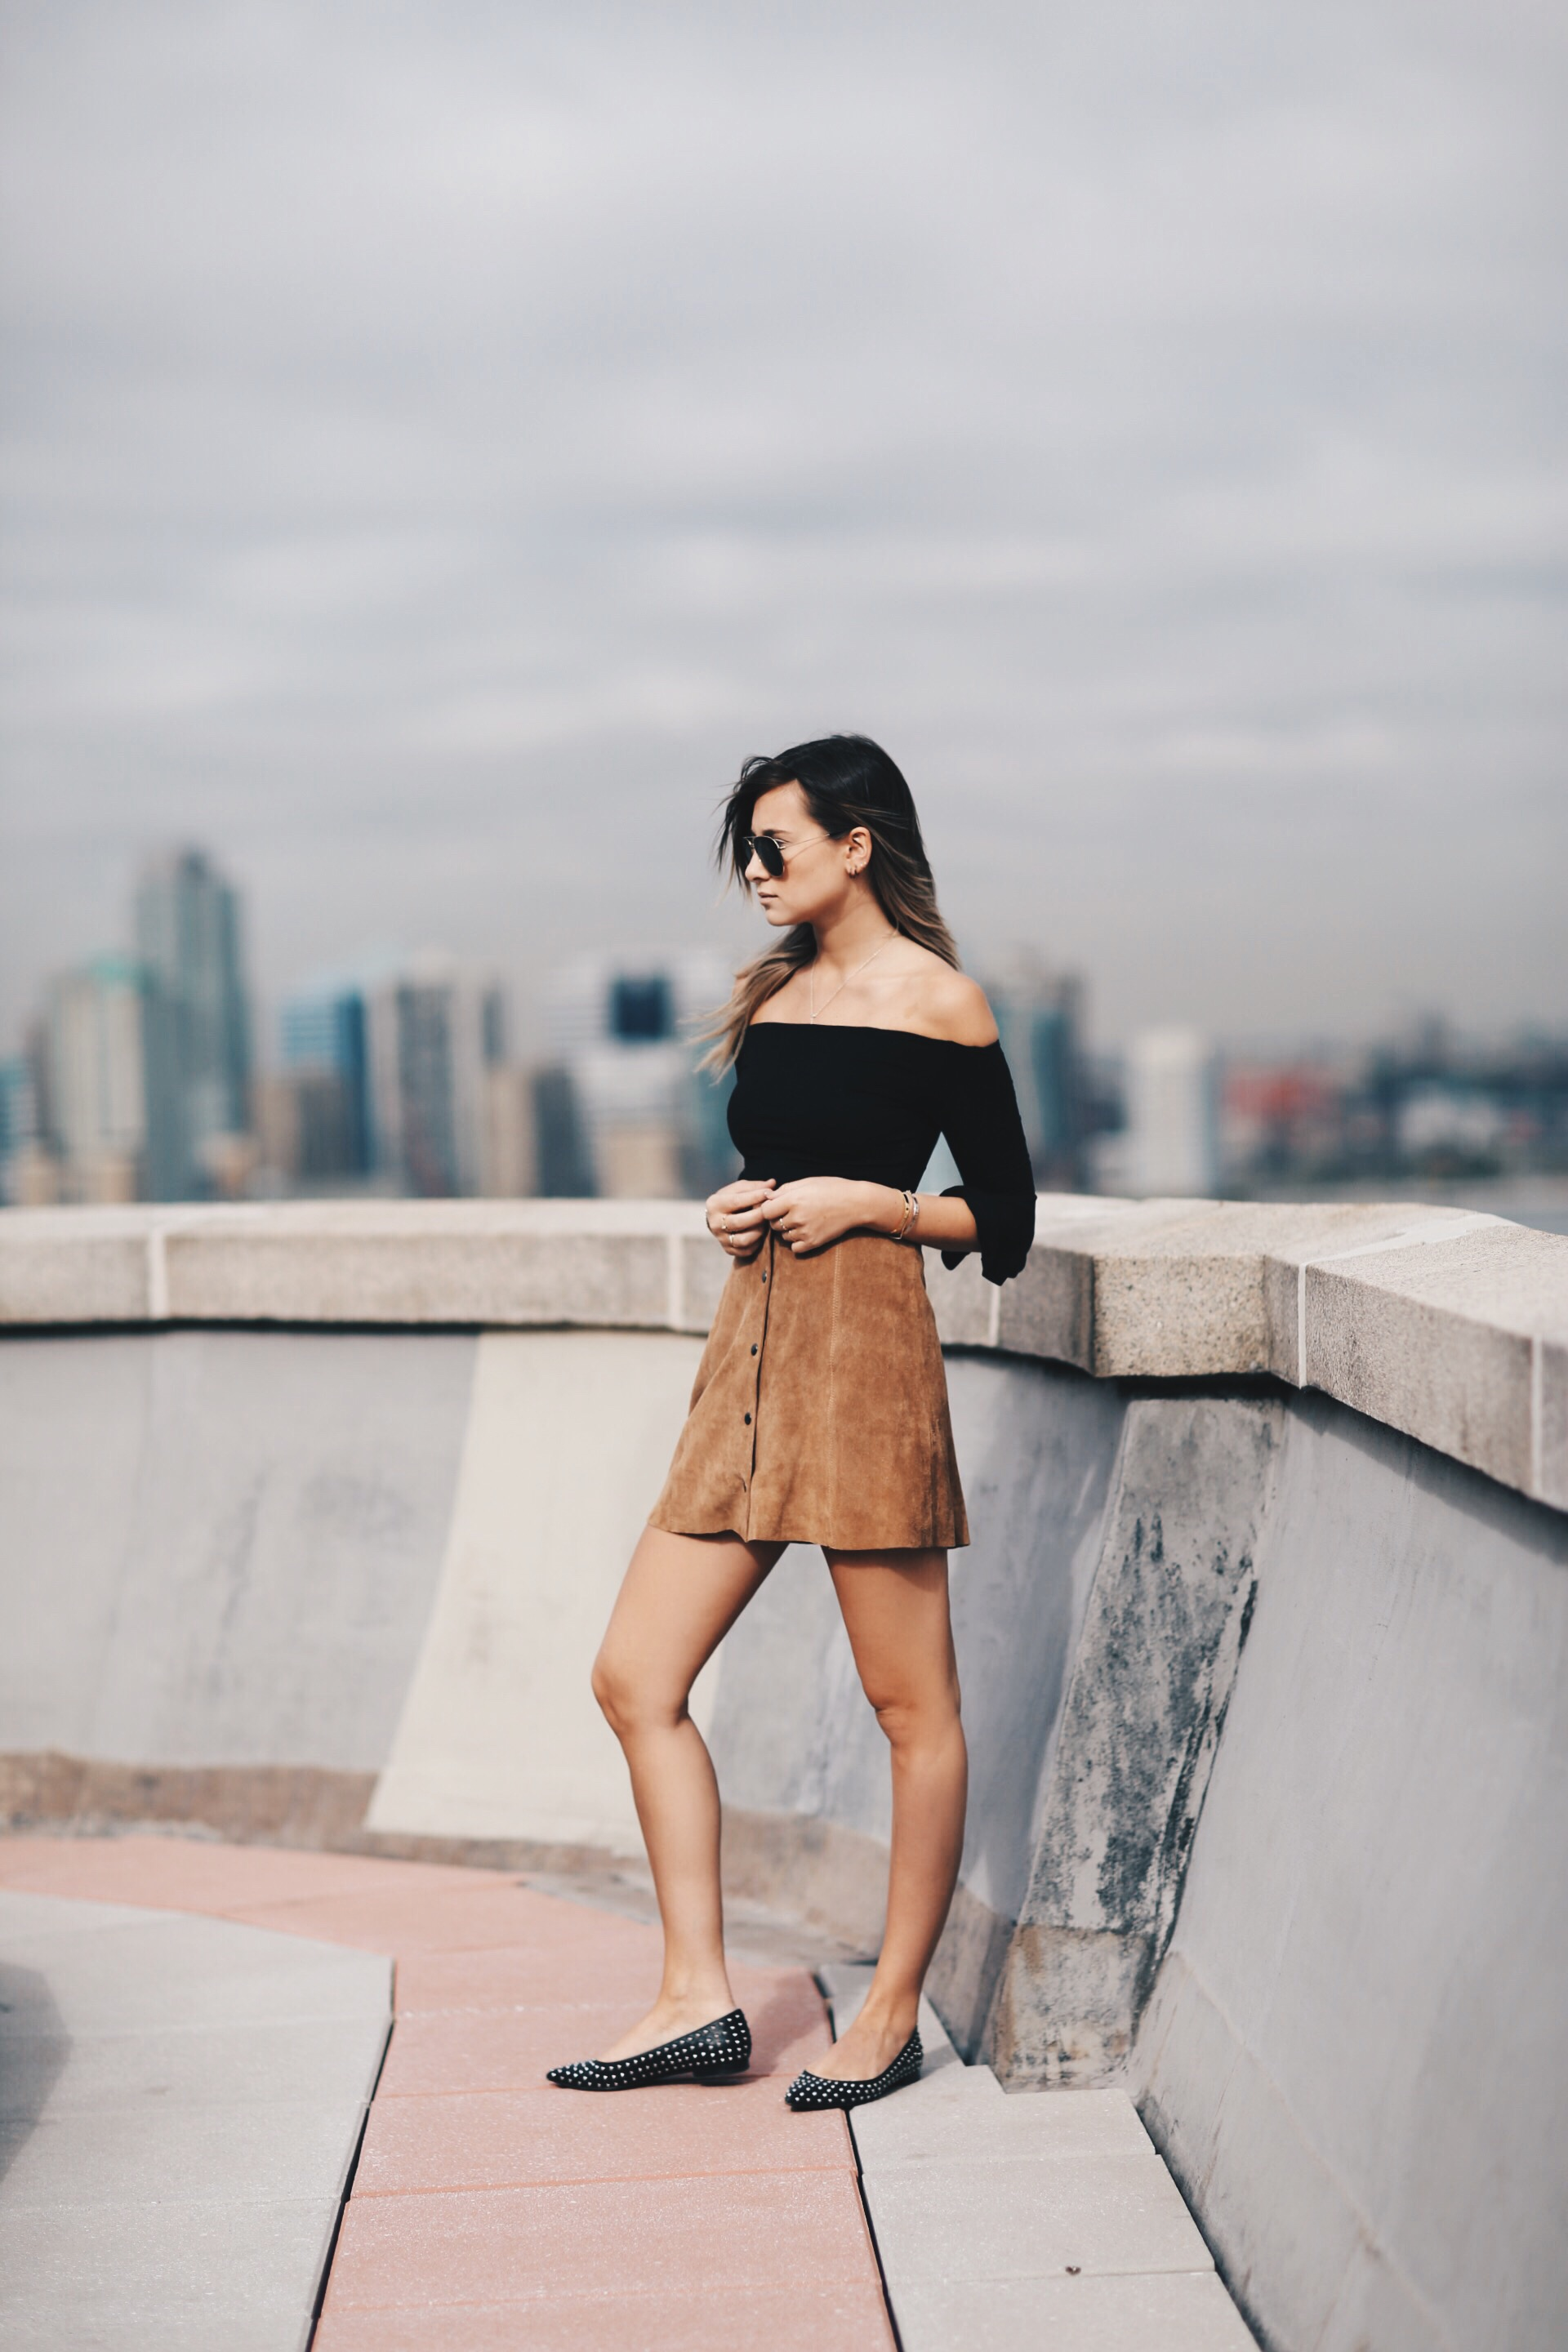 Danielle Bernstein is wearing a black off the shoulder top and a suede skirt both from Topshop